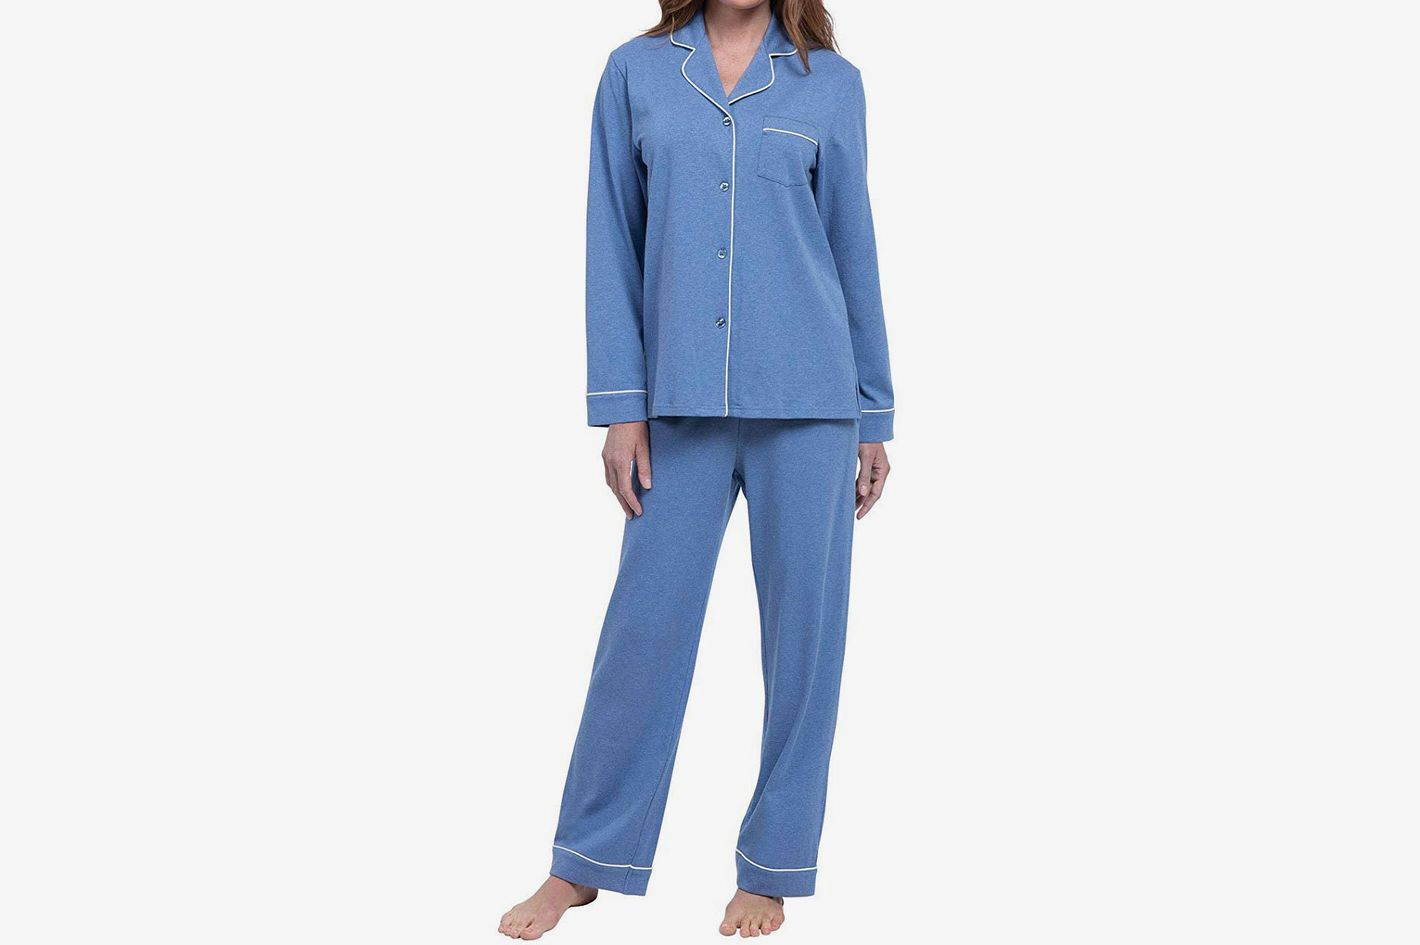 38e0319ad9 PajamaGram Pajamas for Women - Cotton Jersey Womens Pajamas